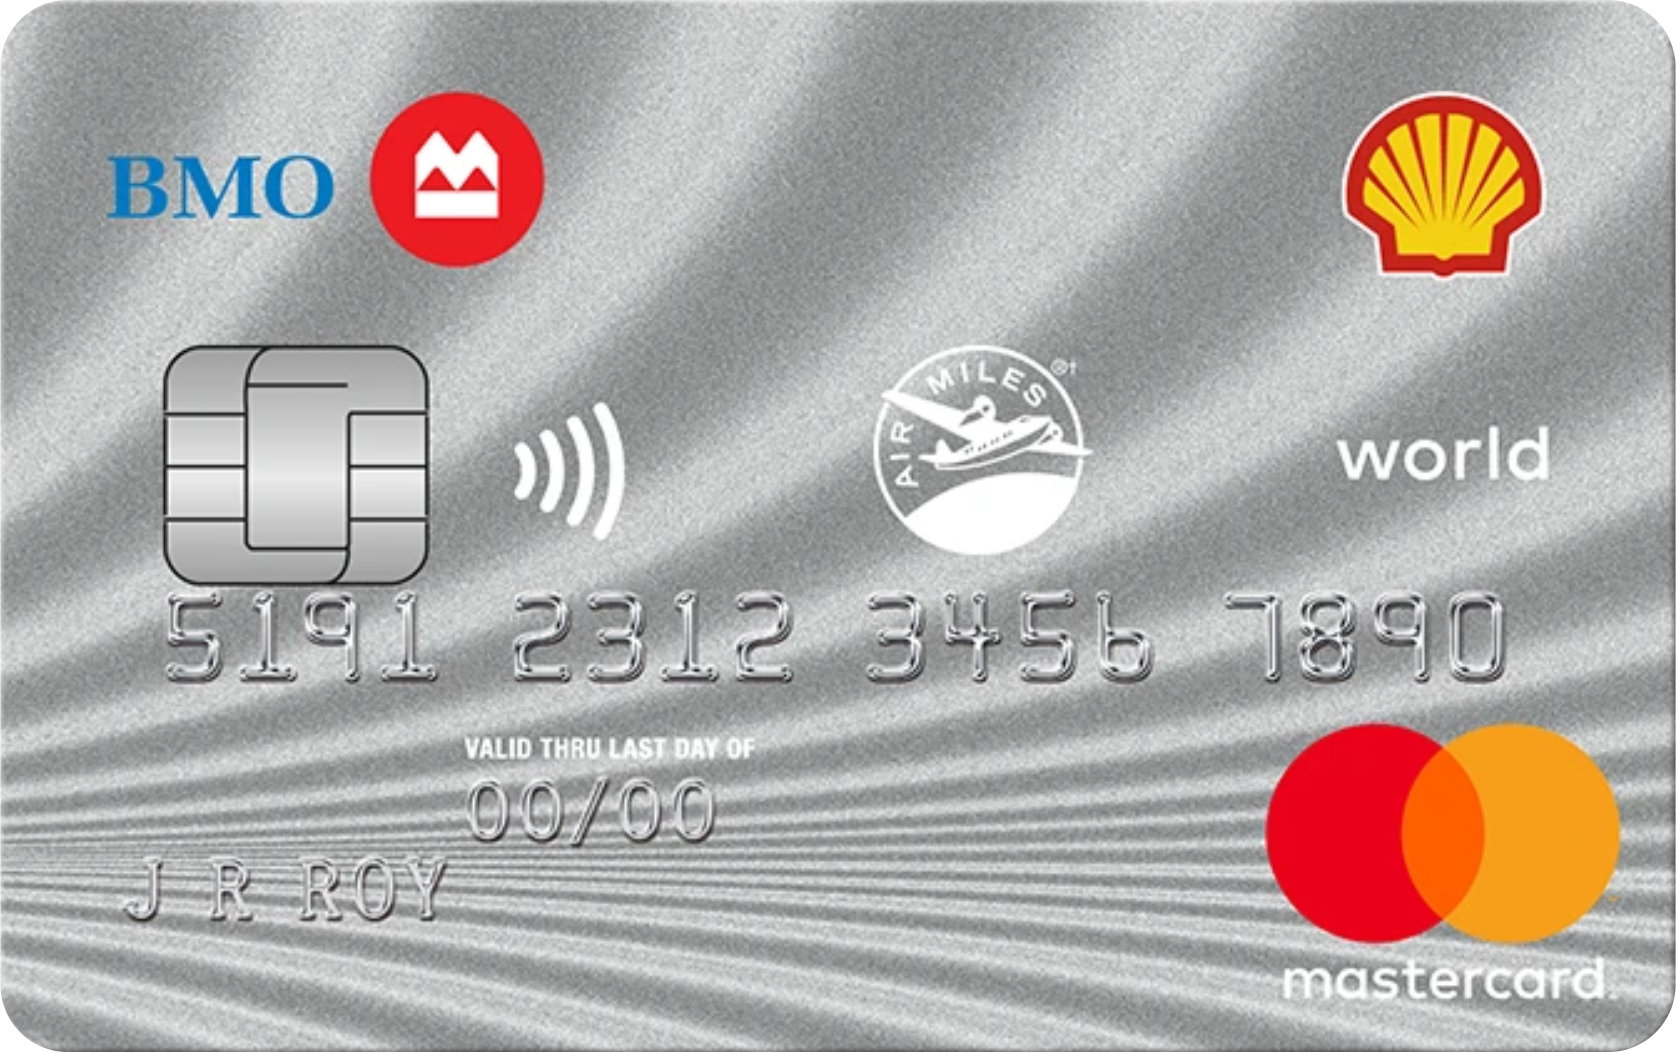 Shell AIR MILES® World MasterCard® from BMO logo